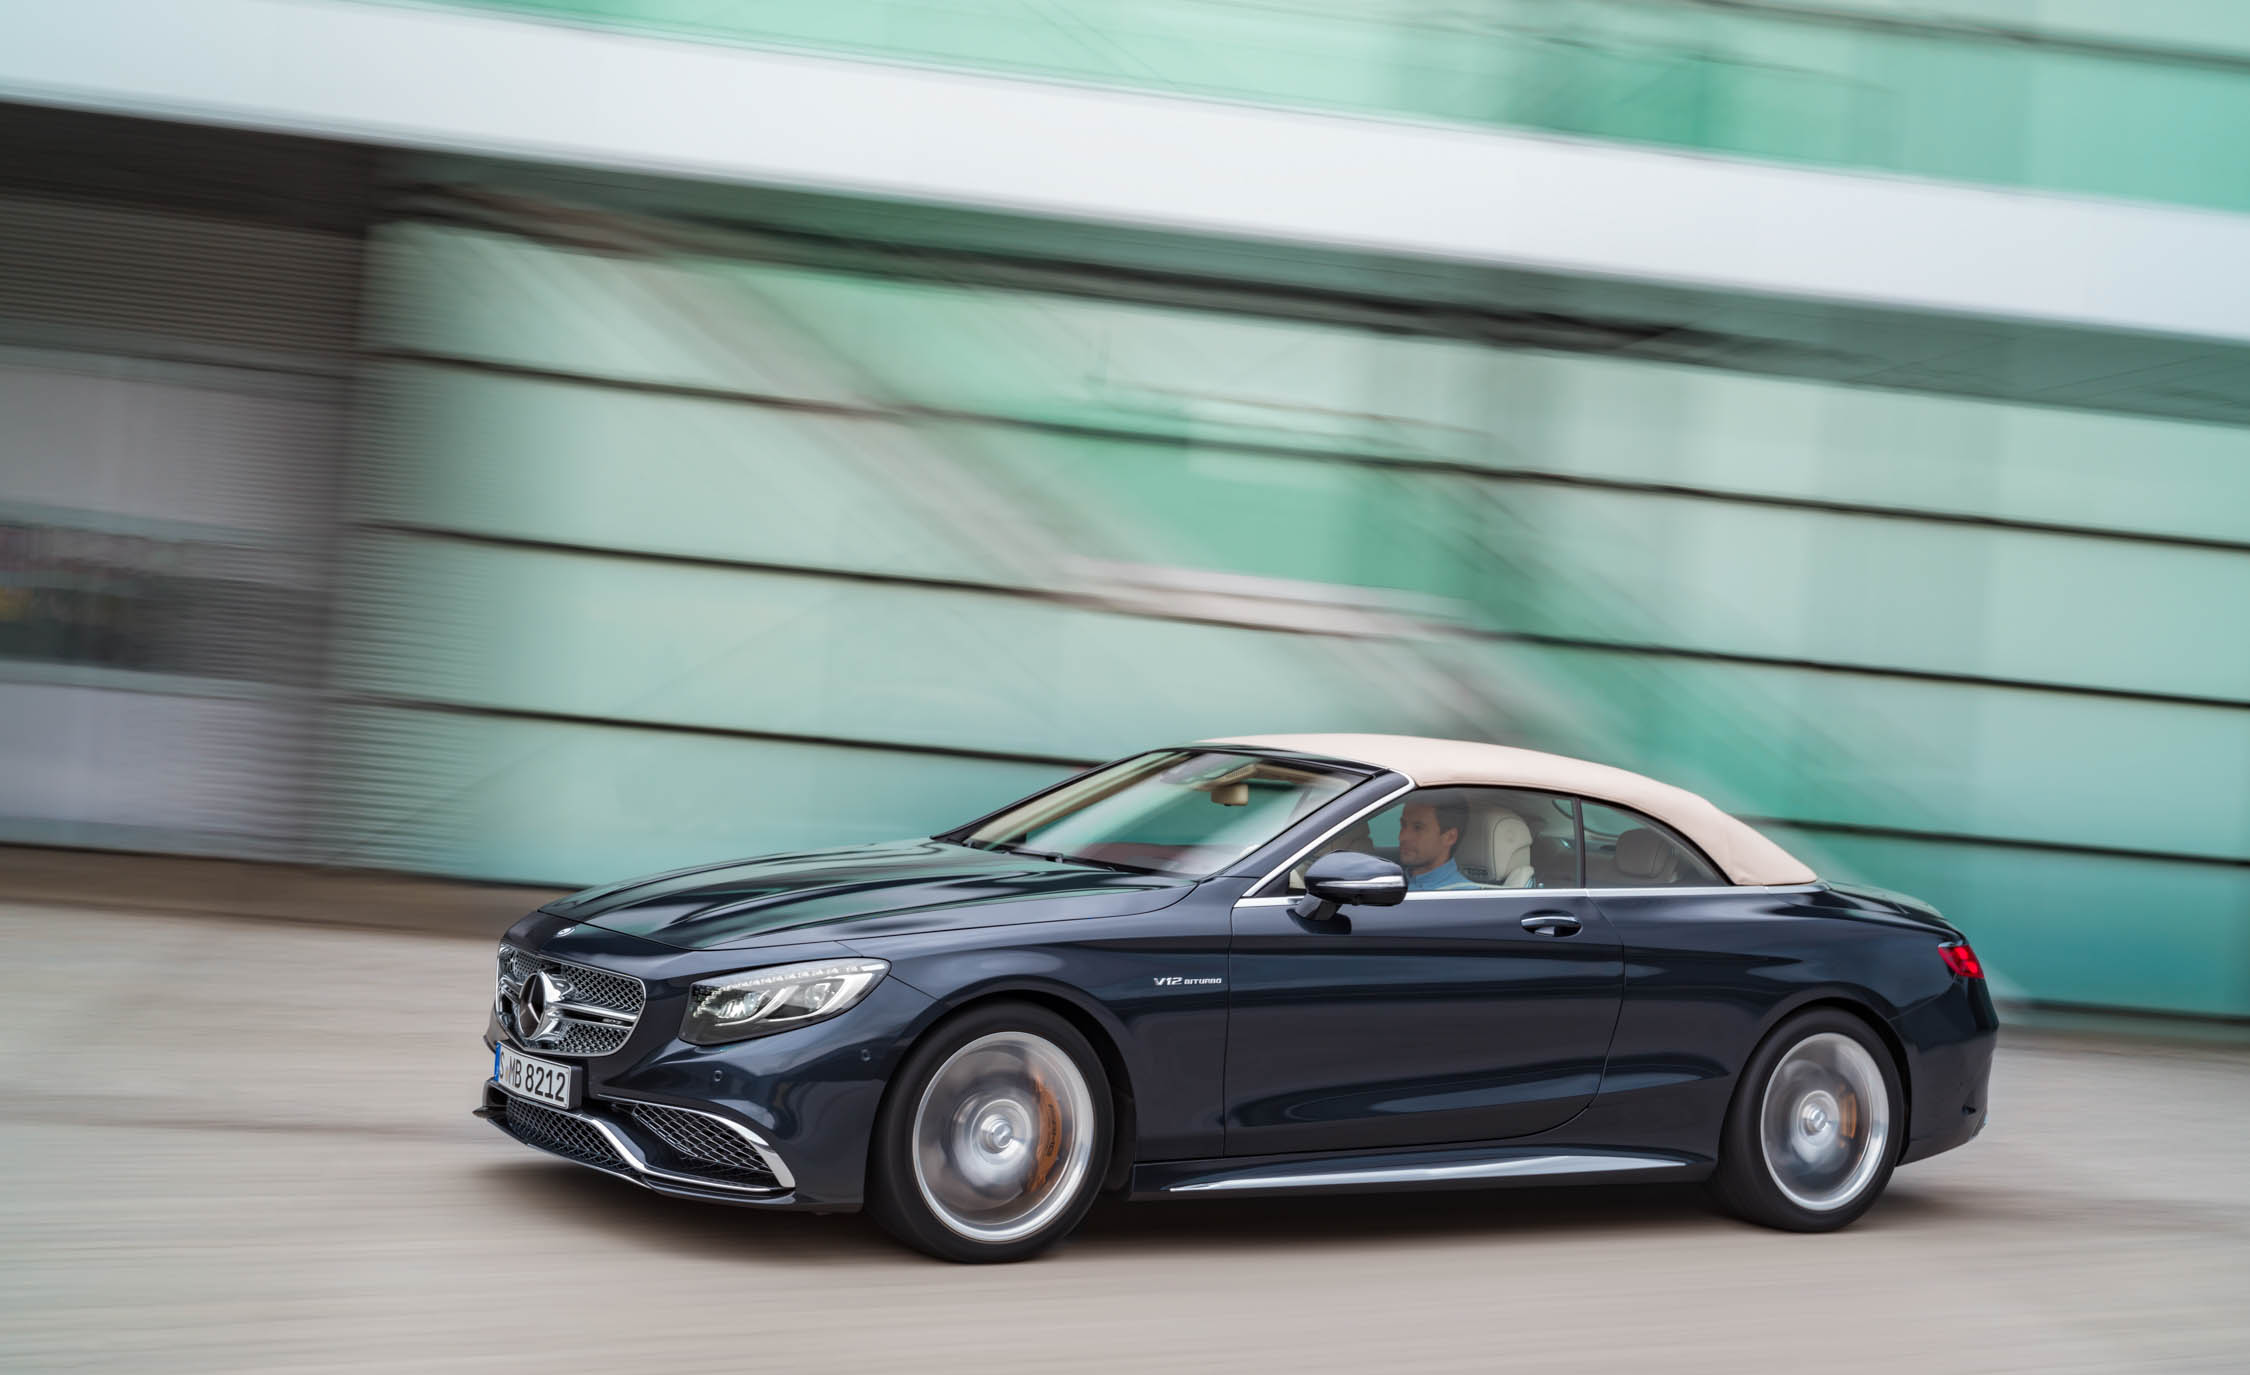 2017 Mercedes Amg S65 Cabriolet Test Drive (Photo 13 of 15)